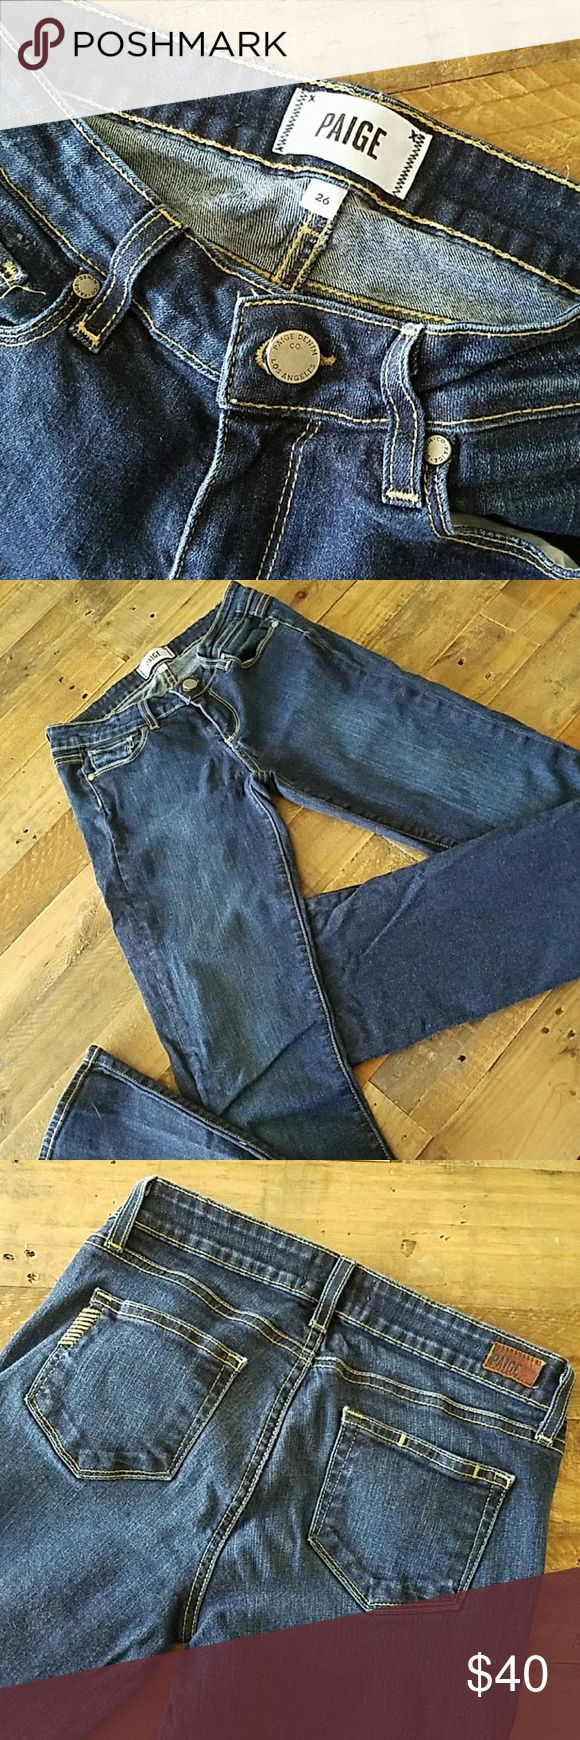 Paige Premium Denim Manhattan Jeans Paige Premium Denim Manhattan Jeans size 26. These are a baby bootcut in slightly stretchy material.  Gently used. PAIGE Jeans